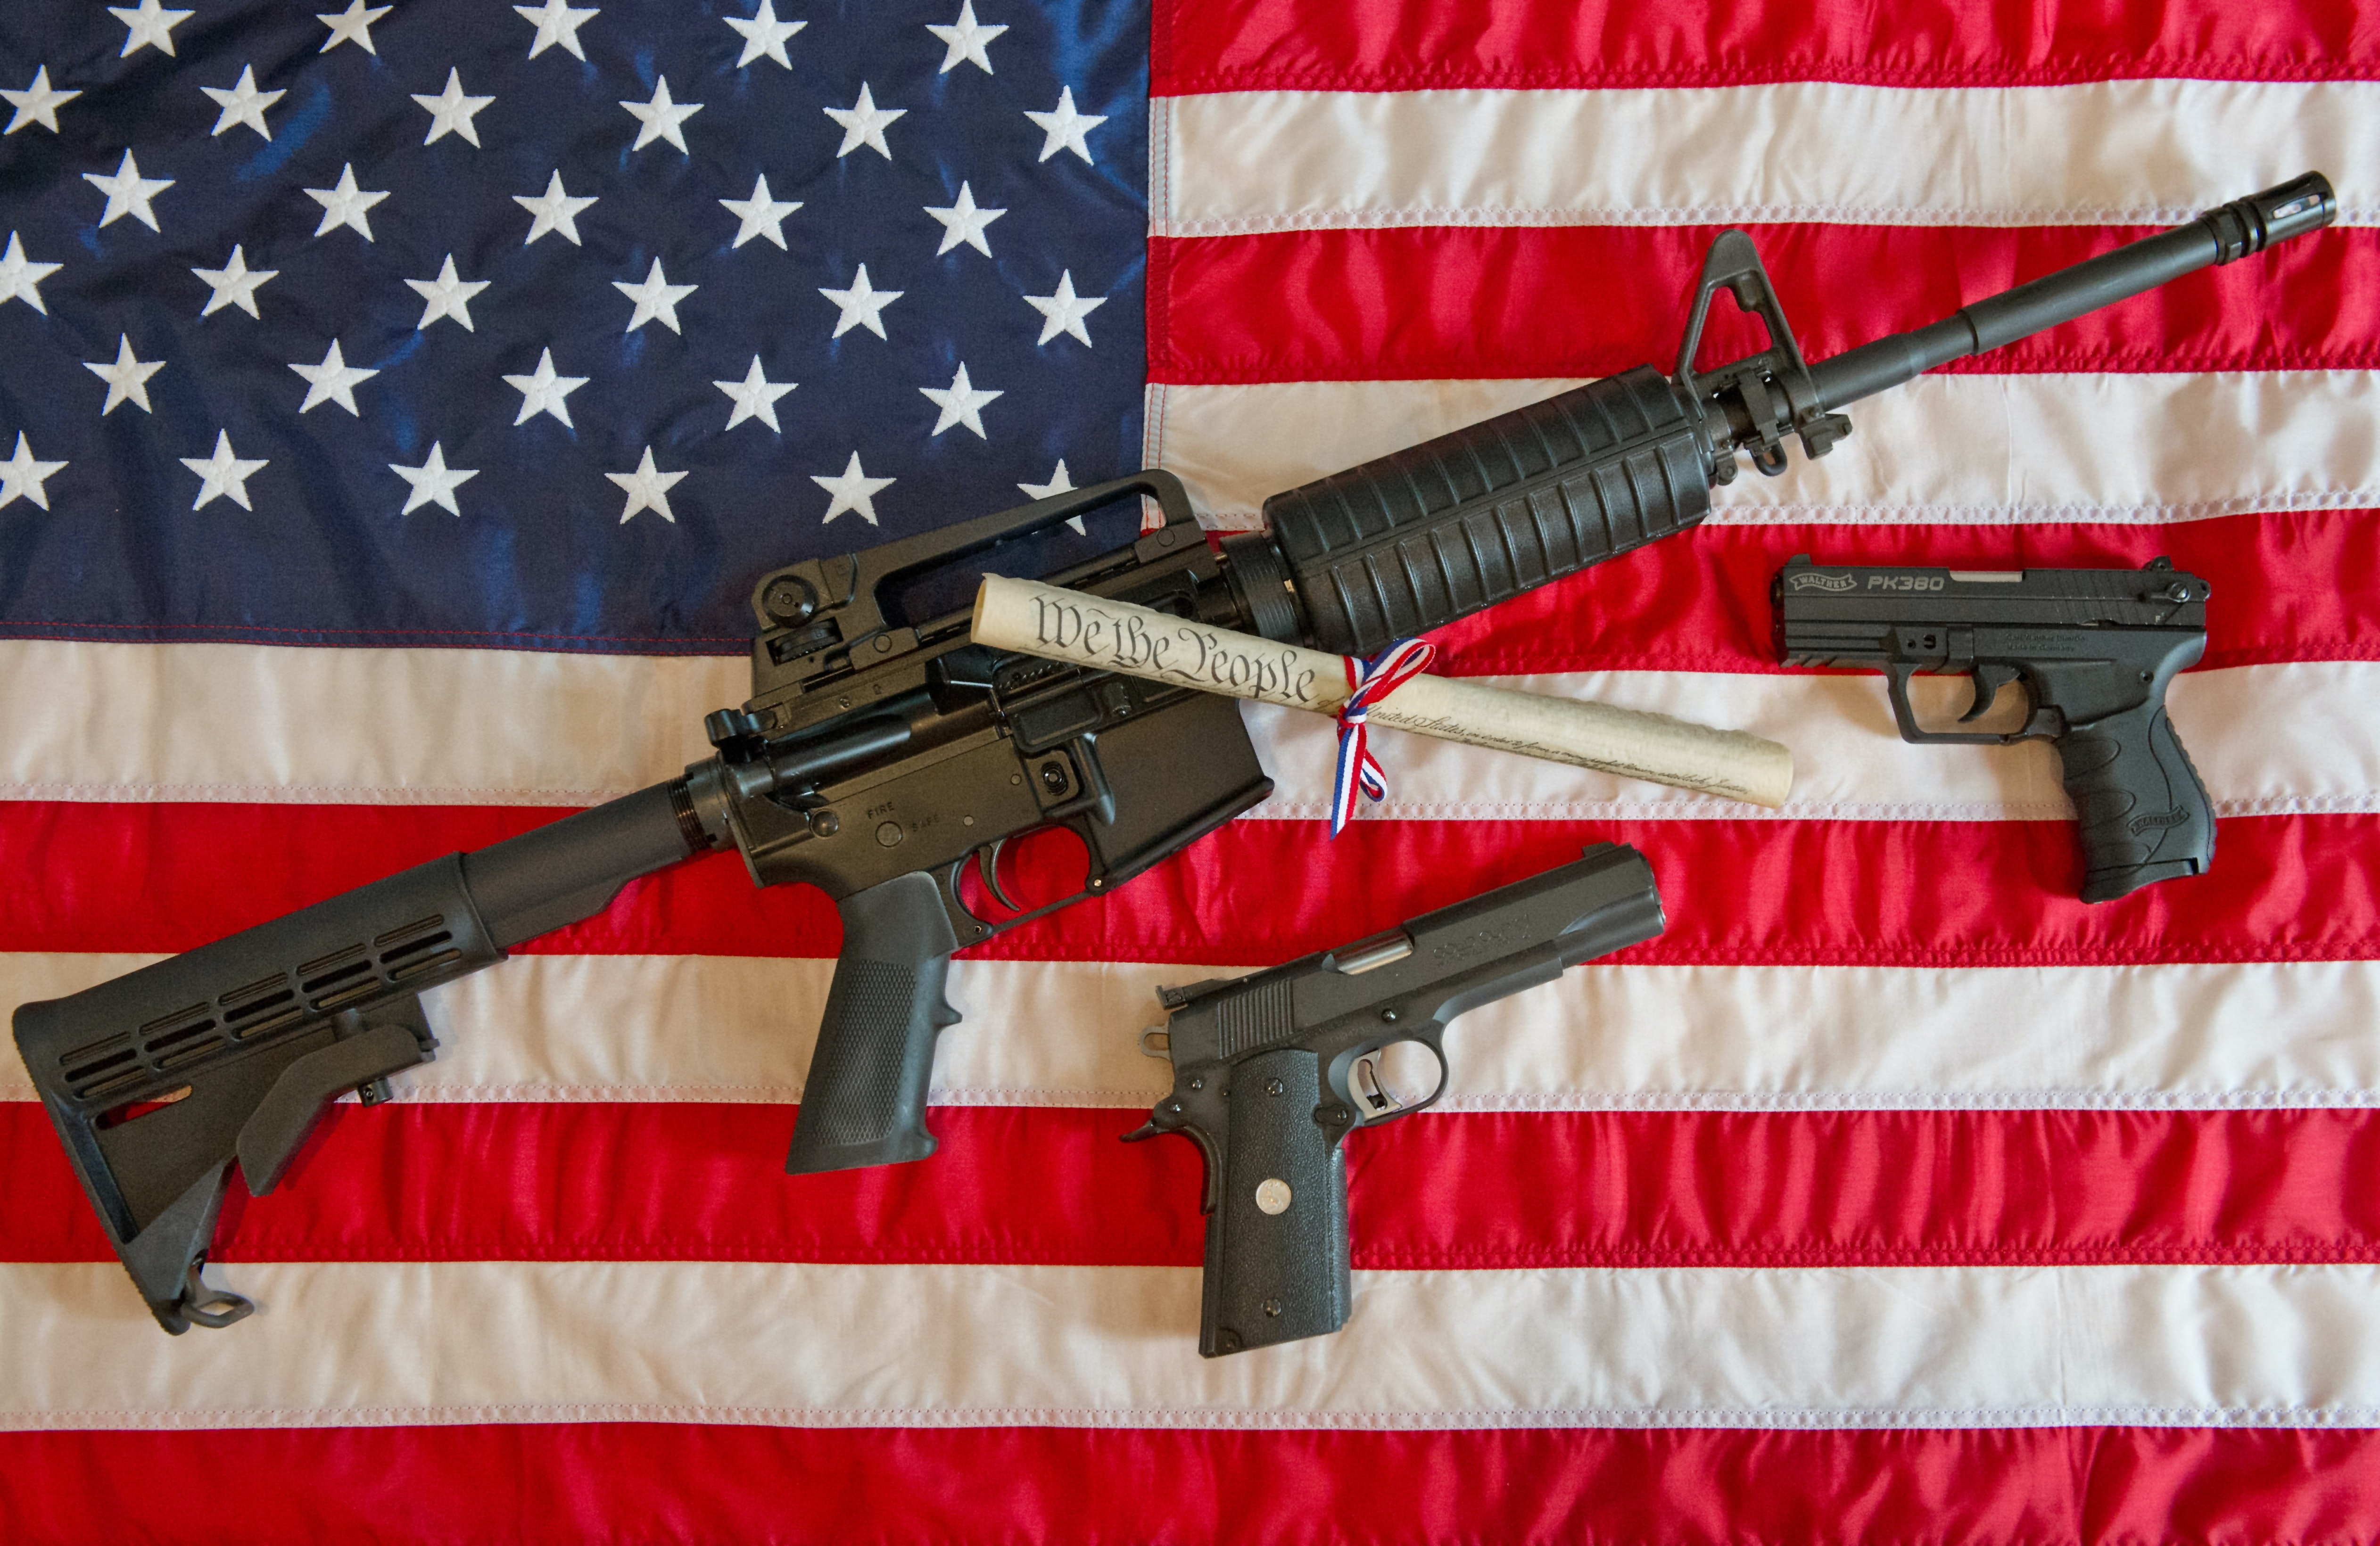 Arguments That The AR-15 Is For Home Defense Are Insane